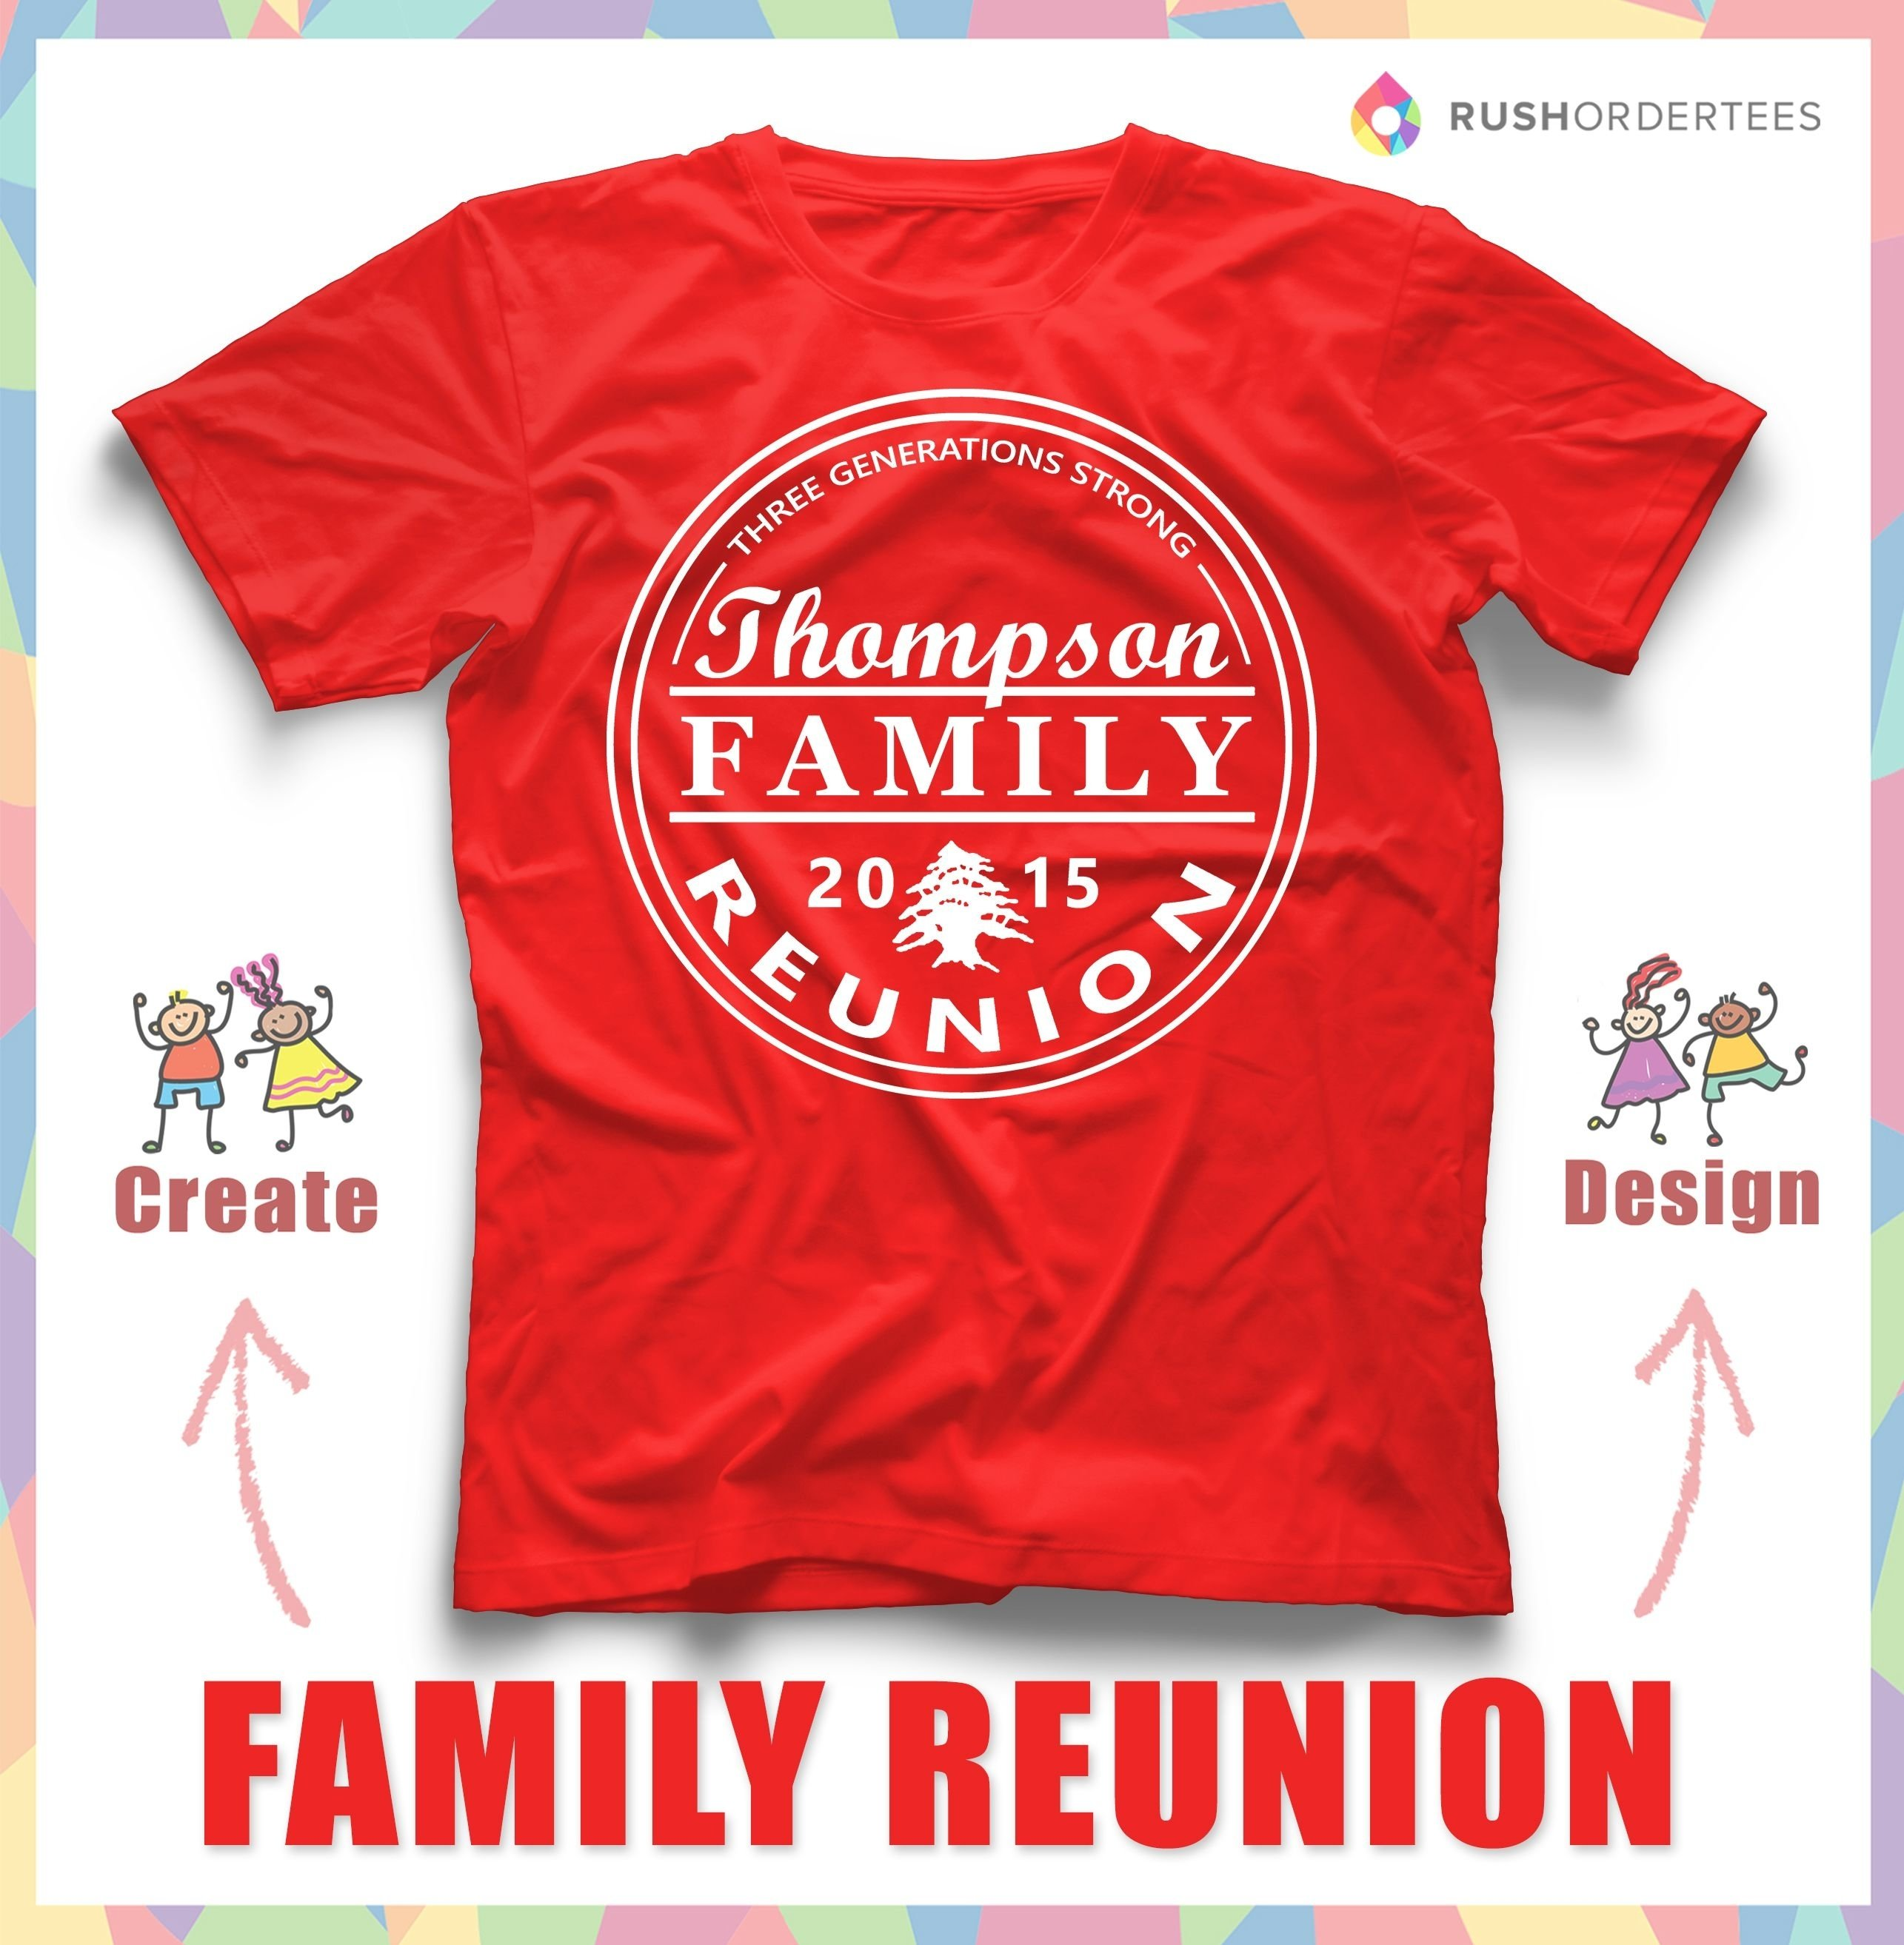 family reunion t-shirt design idea's! create a reunion shirt for